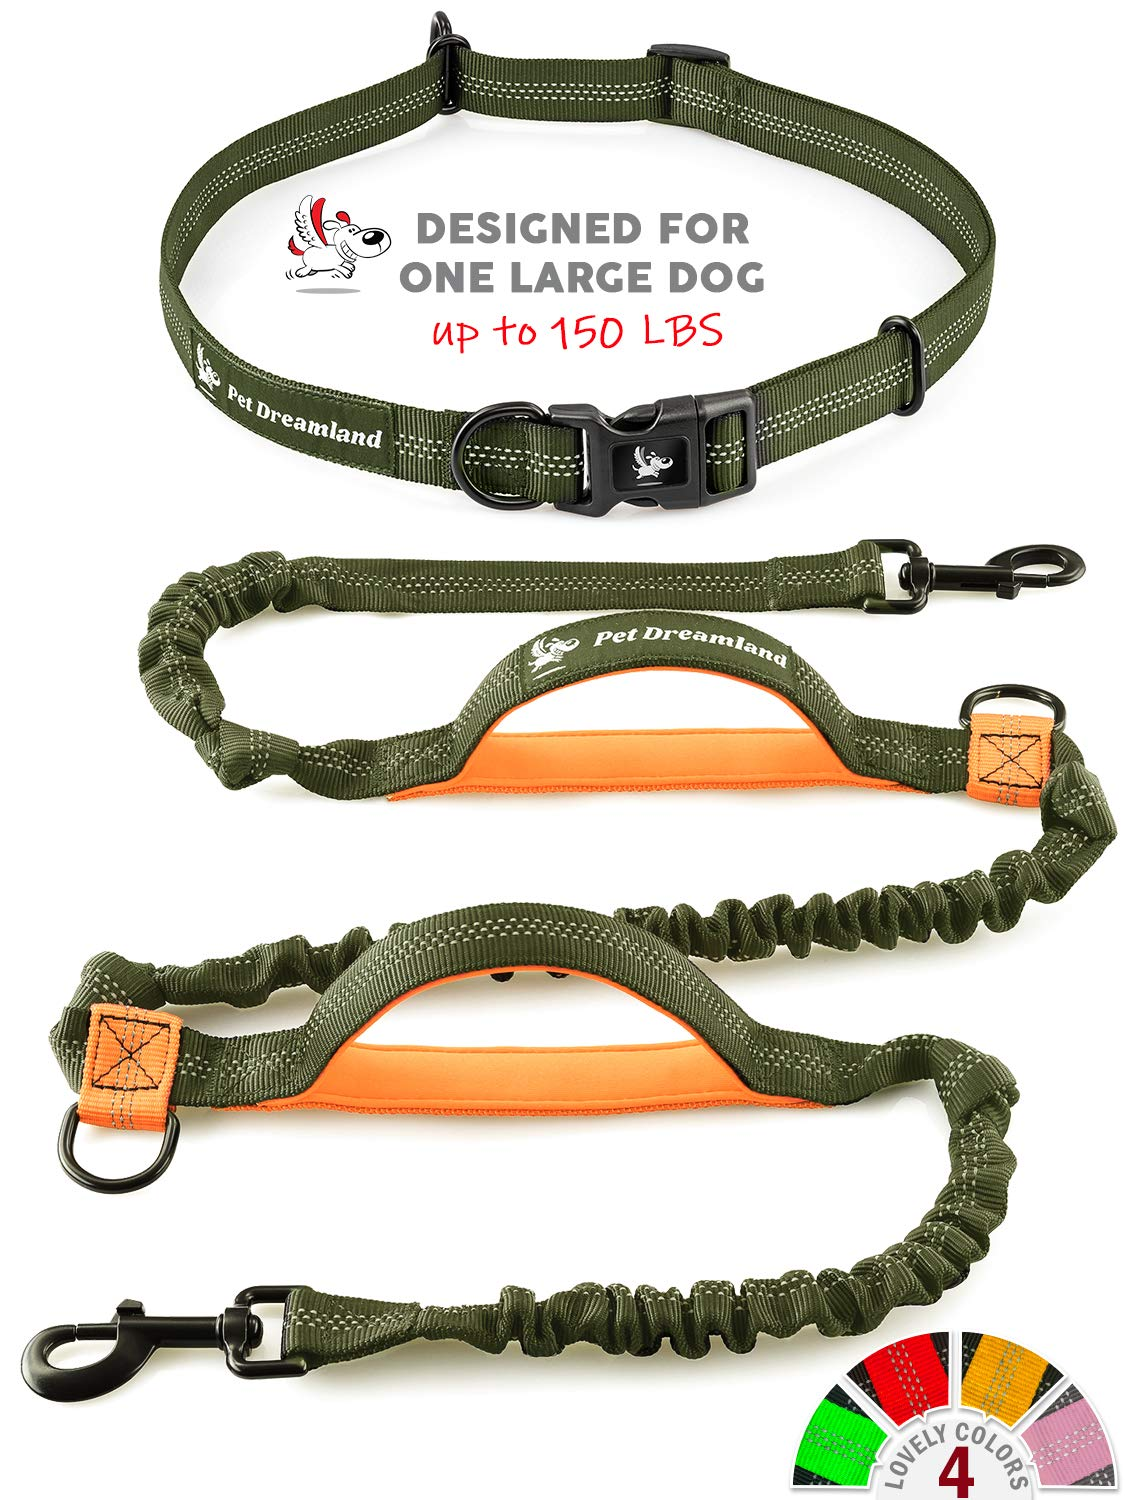 Pet Dreamland Hands Free Leash for Dog Walking - Medium to Large Dogs (up to 150lbs) - Shock Absorbing Bungee Dog Leashes - Reflective Waist Dog Running Leash by Pet Dreamland